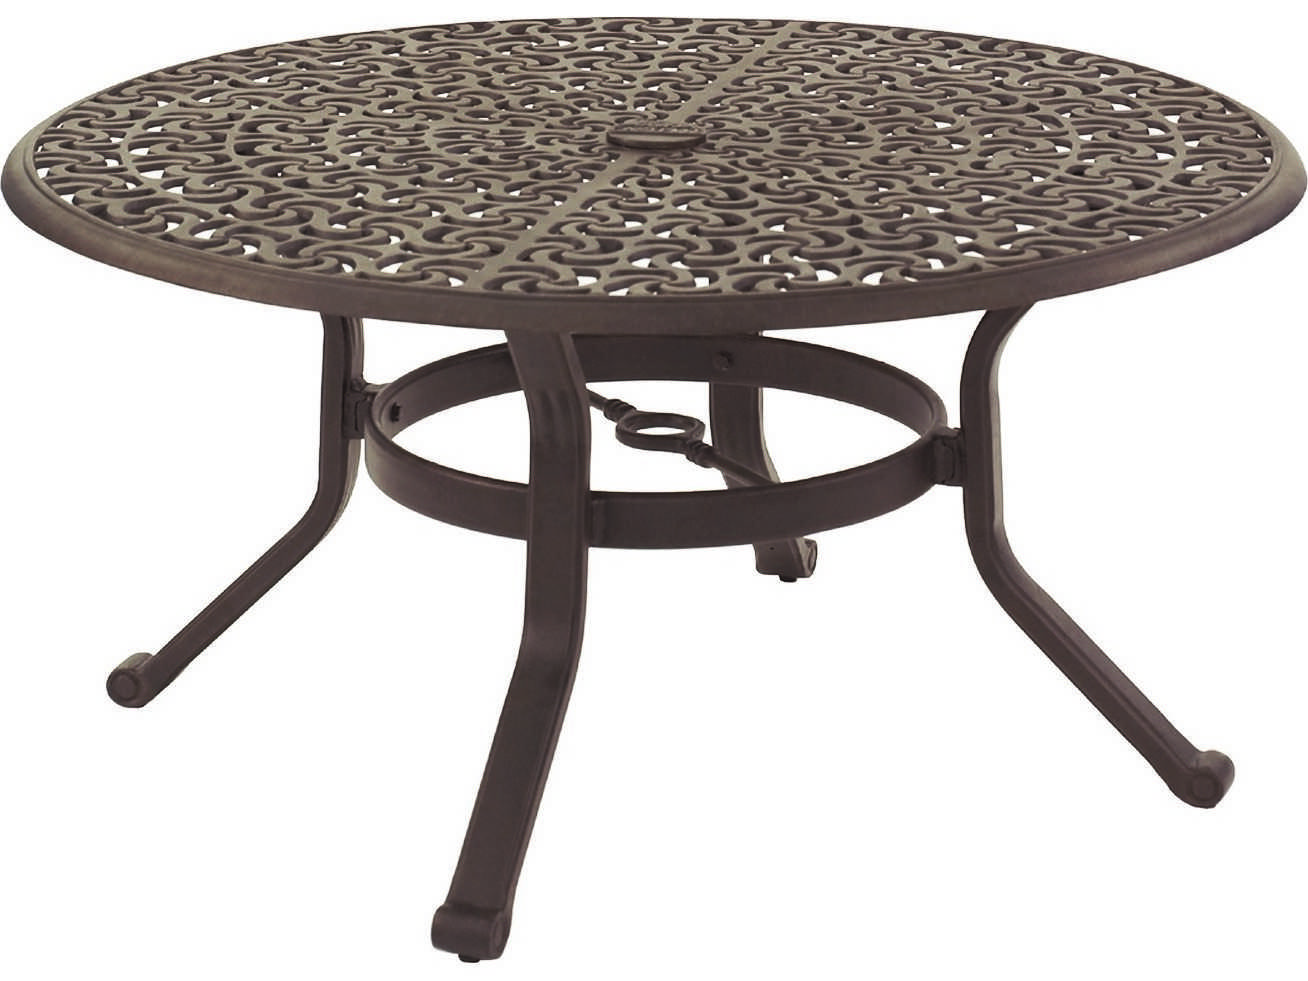 Castelle Sienna Cast Aluminum 42 Round Coffee Table Ready